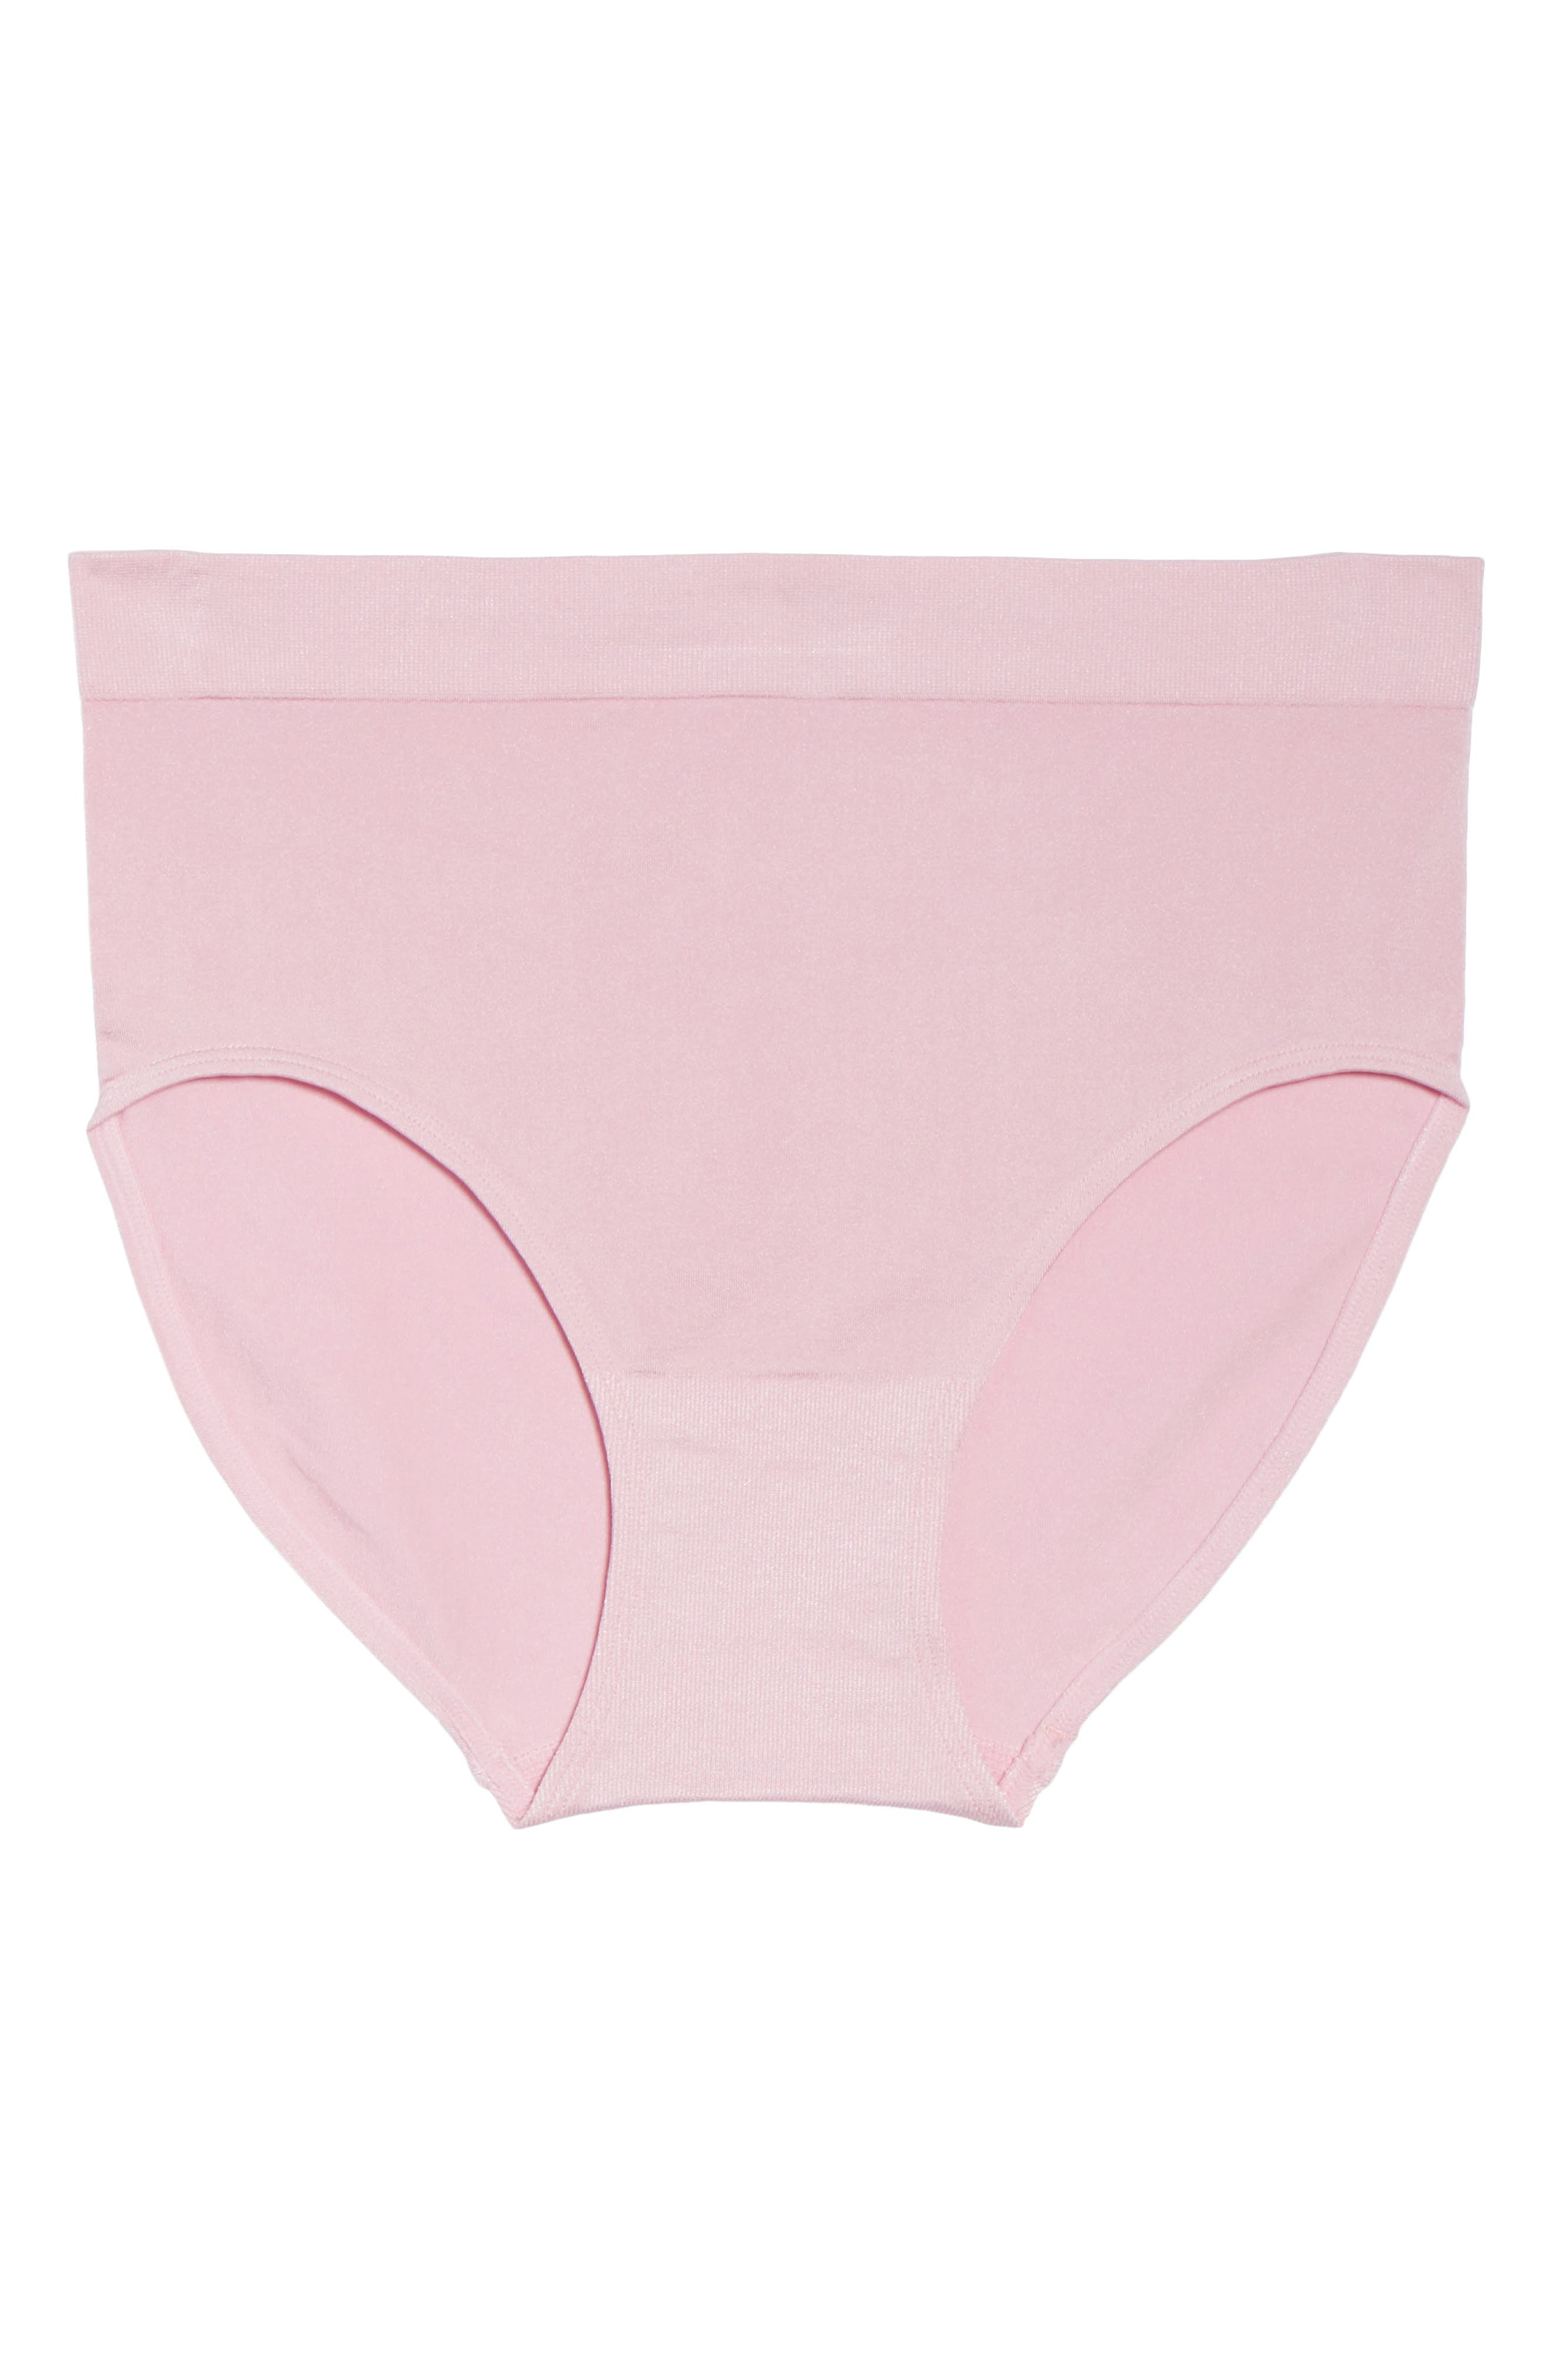 B Smooth Briefs,                             Alternate thumbnail 9, color,                             Cameo Pink